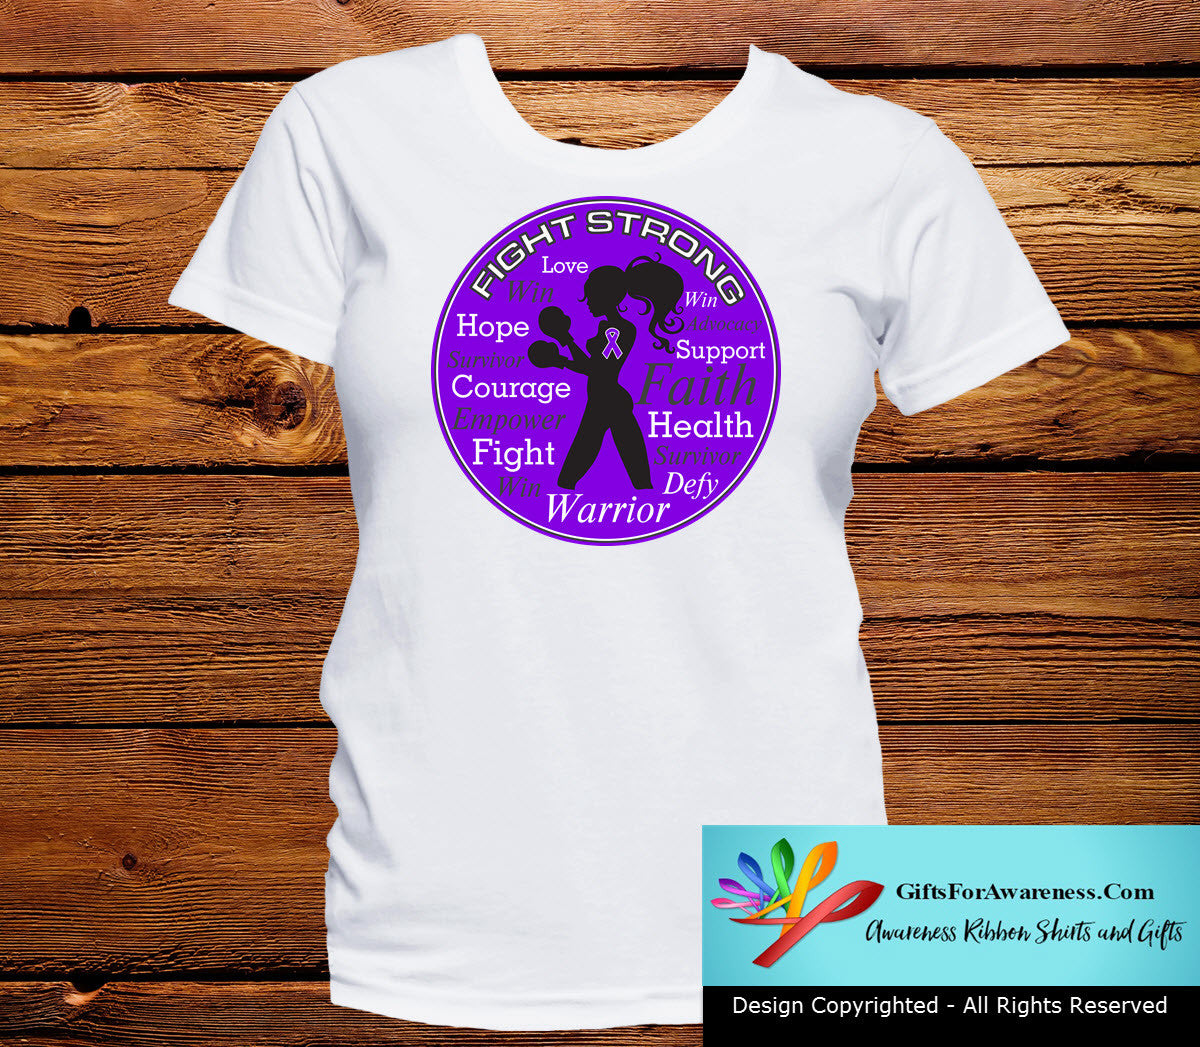 ITP Fight Strong Motto T-Shirts - GiftsForAwareness